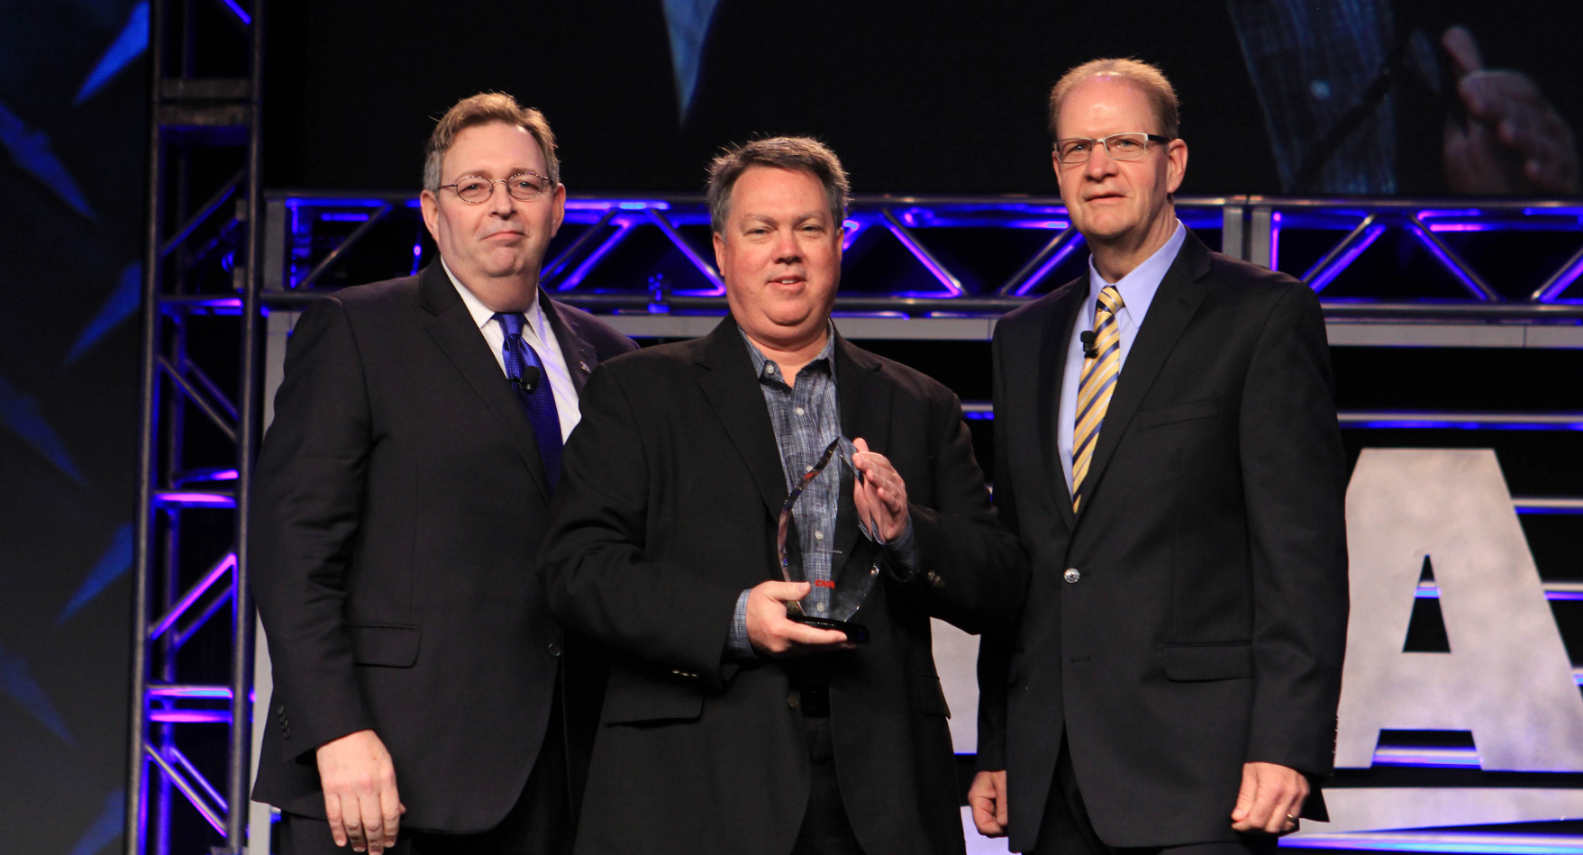 three men in suits holding a glass award for safety